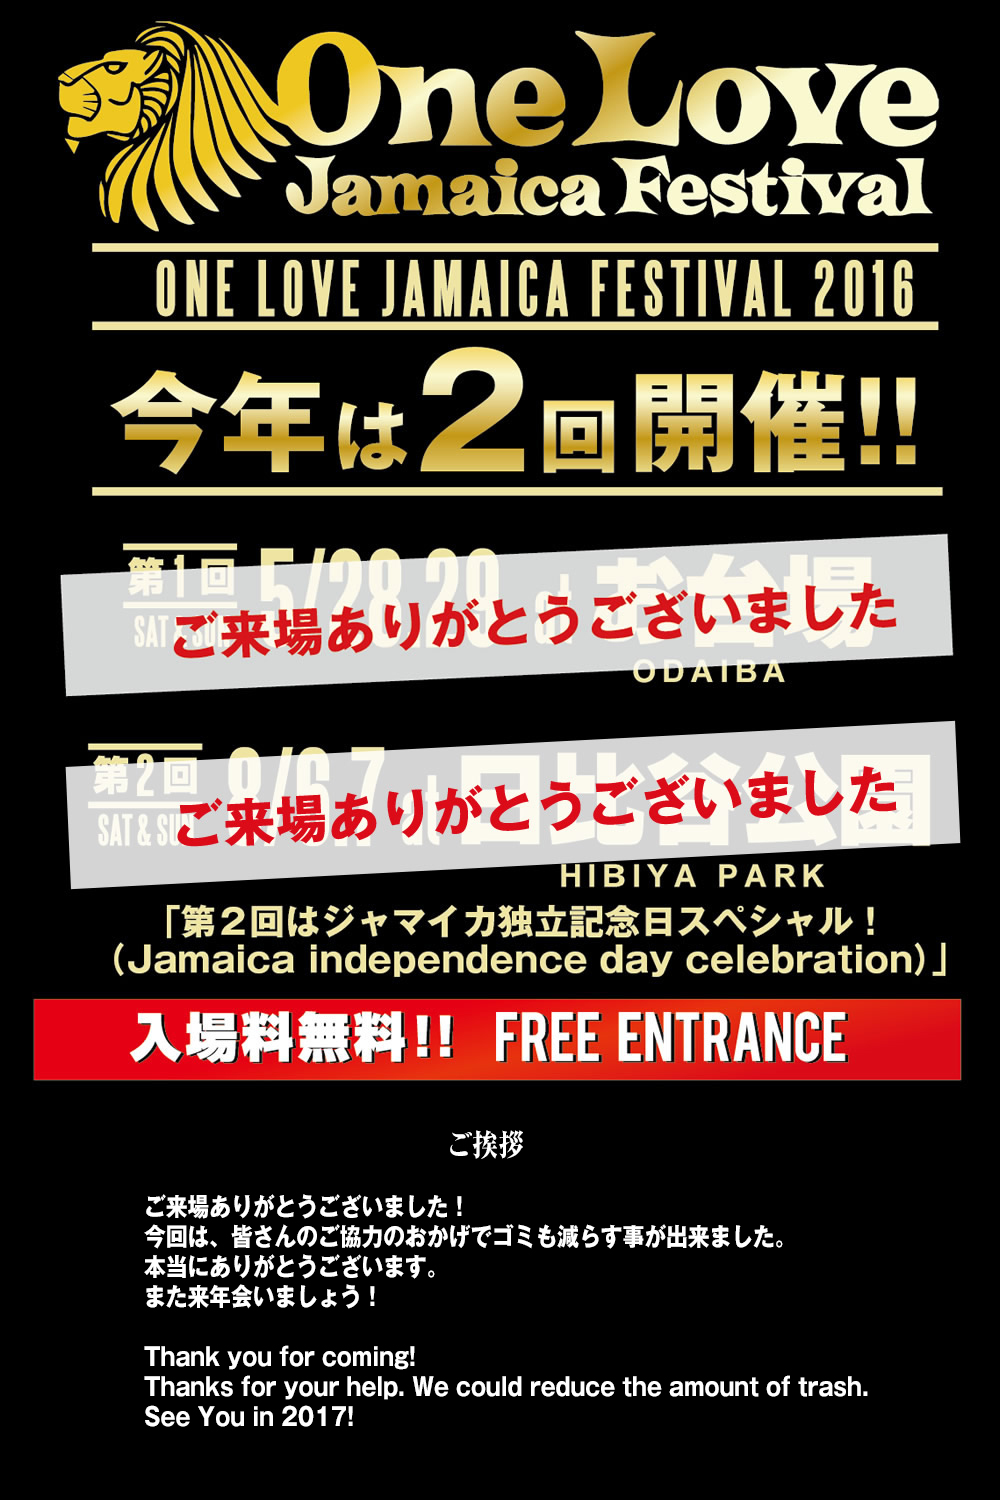 ONE LOVE JAMAICA FESTIVAL ご挨拶